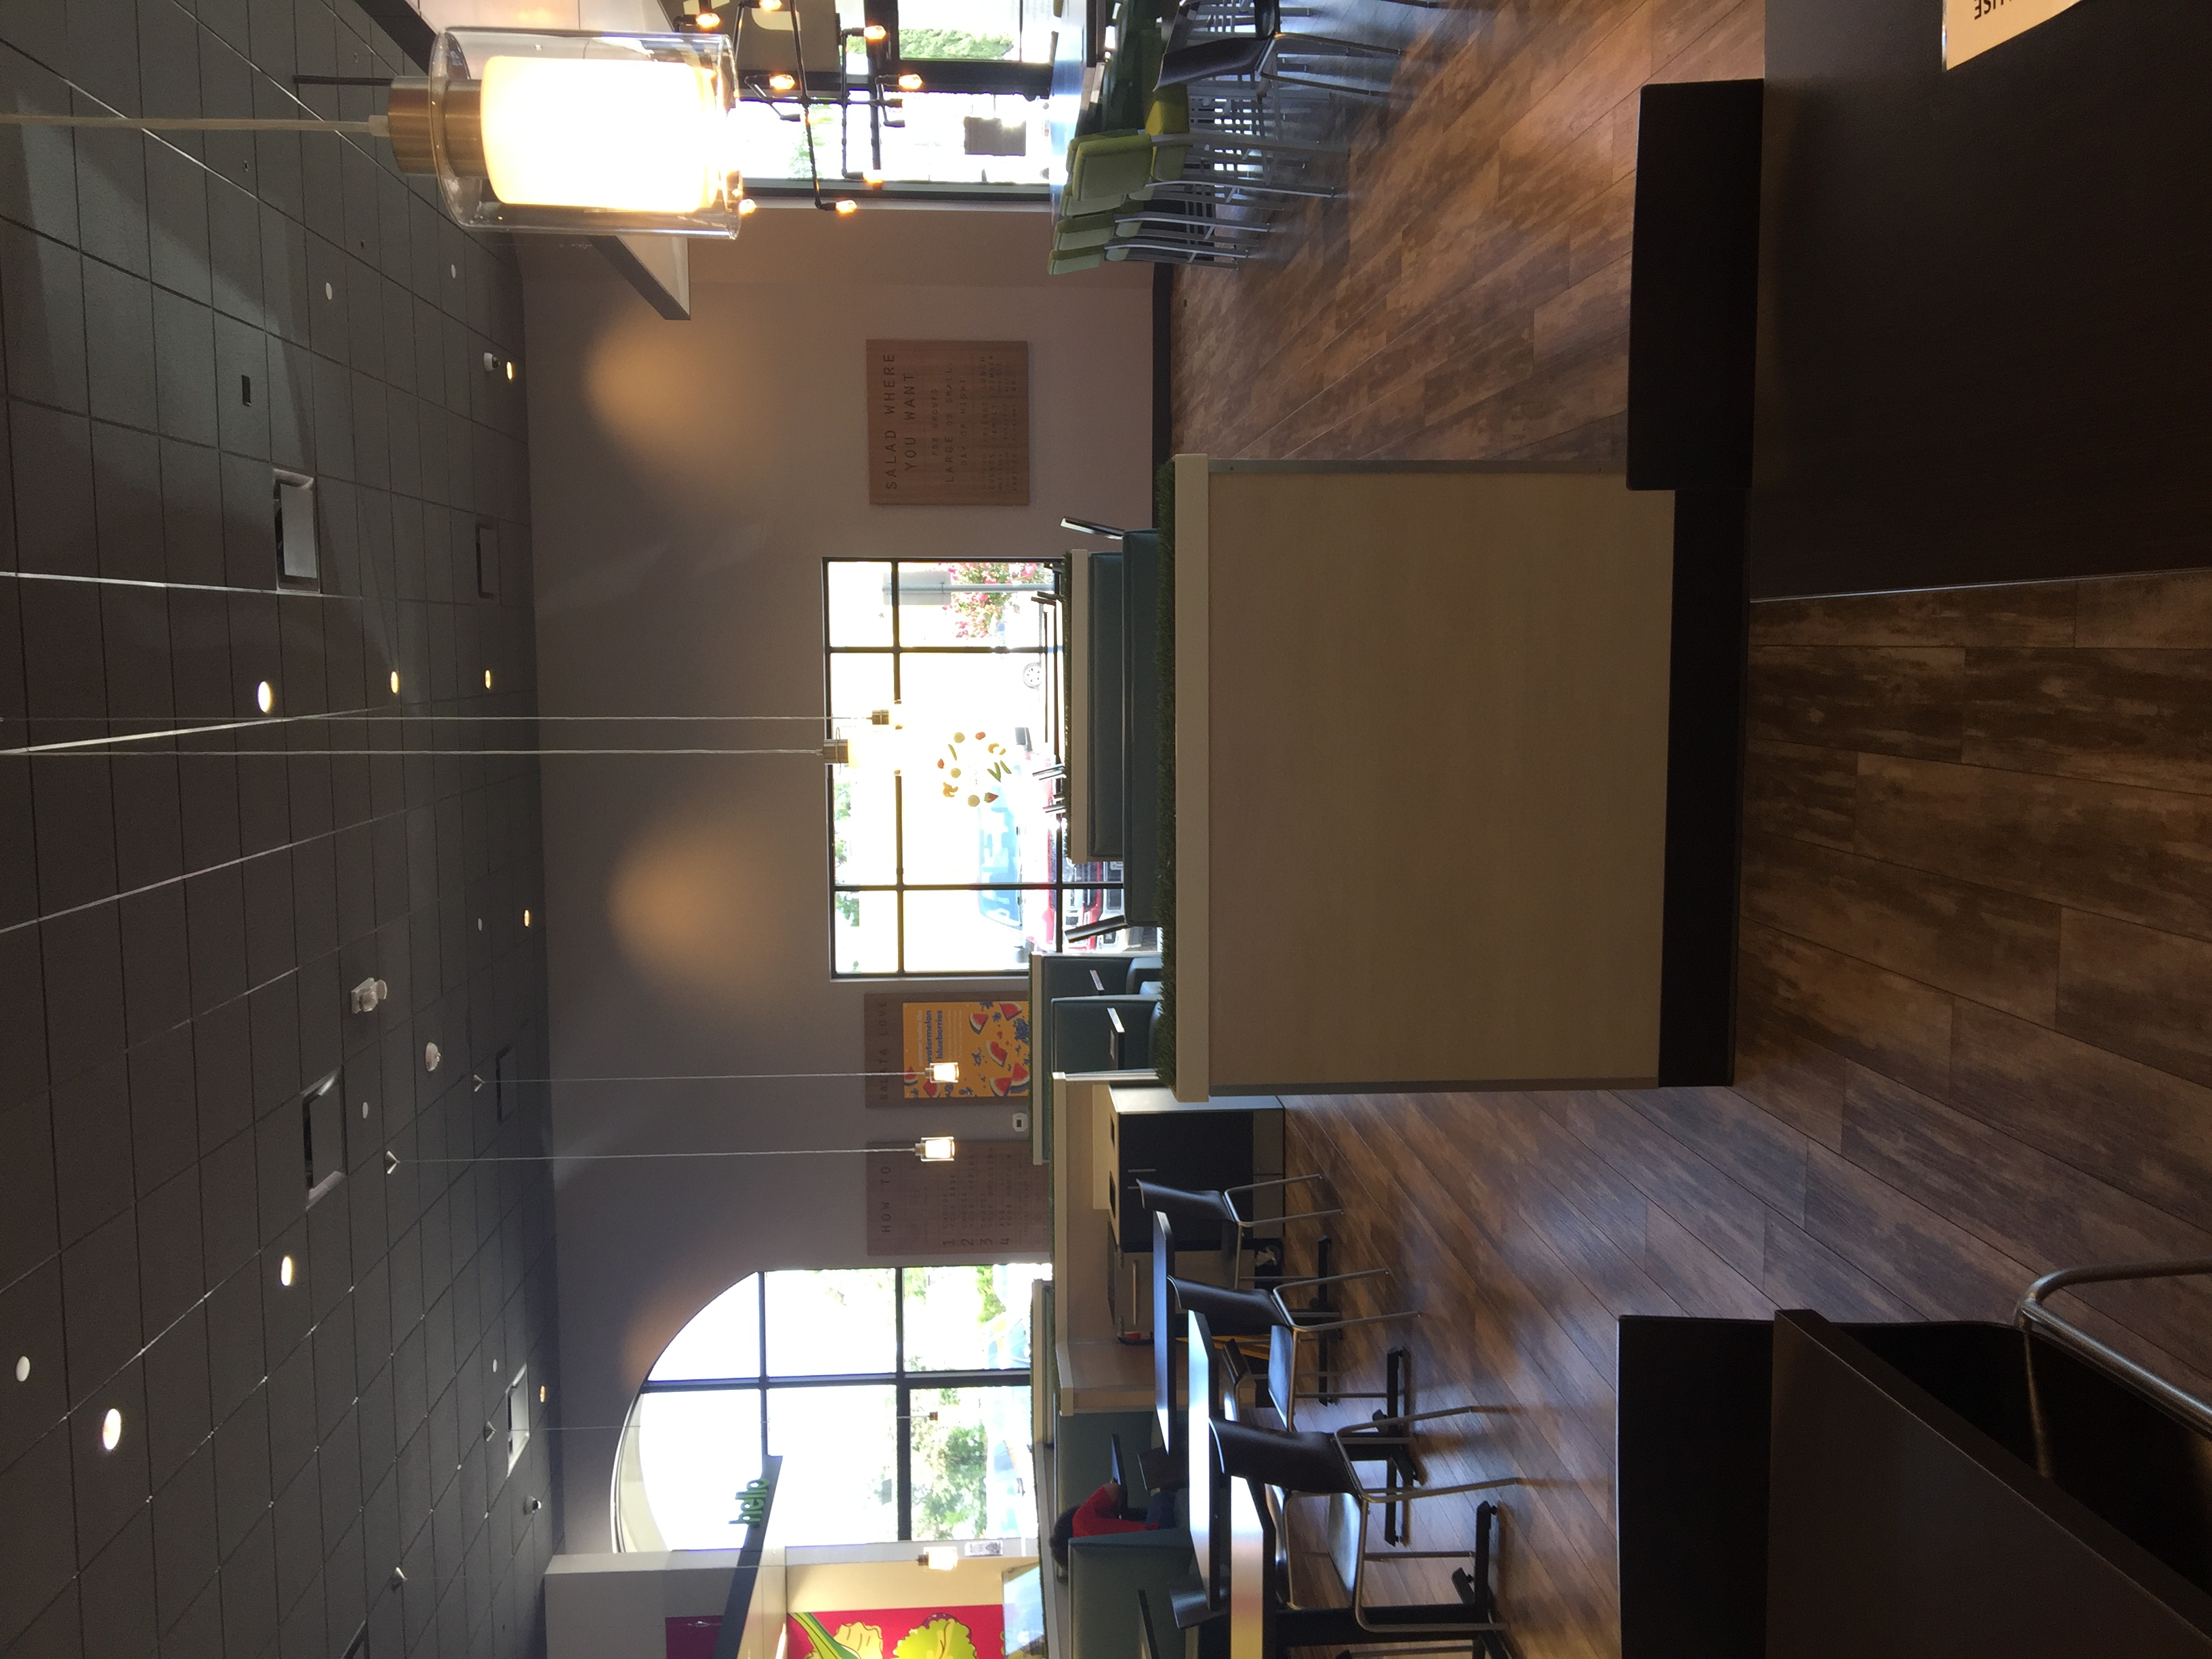 Houston Remodel Pros: Houston general contractor operates during COVID-19, helping businesses to remodel their premises.